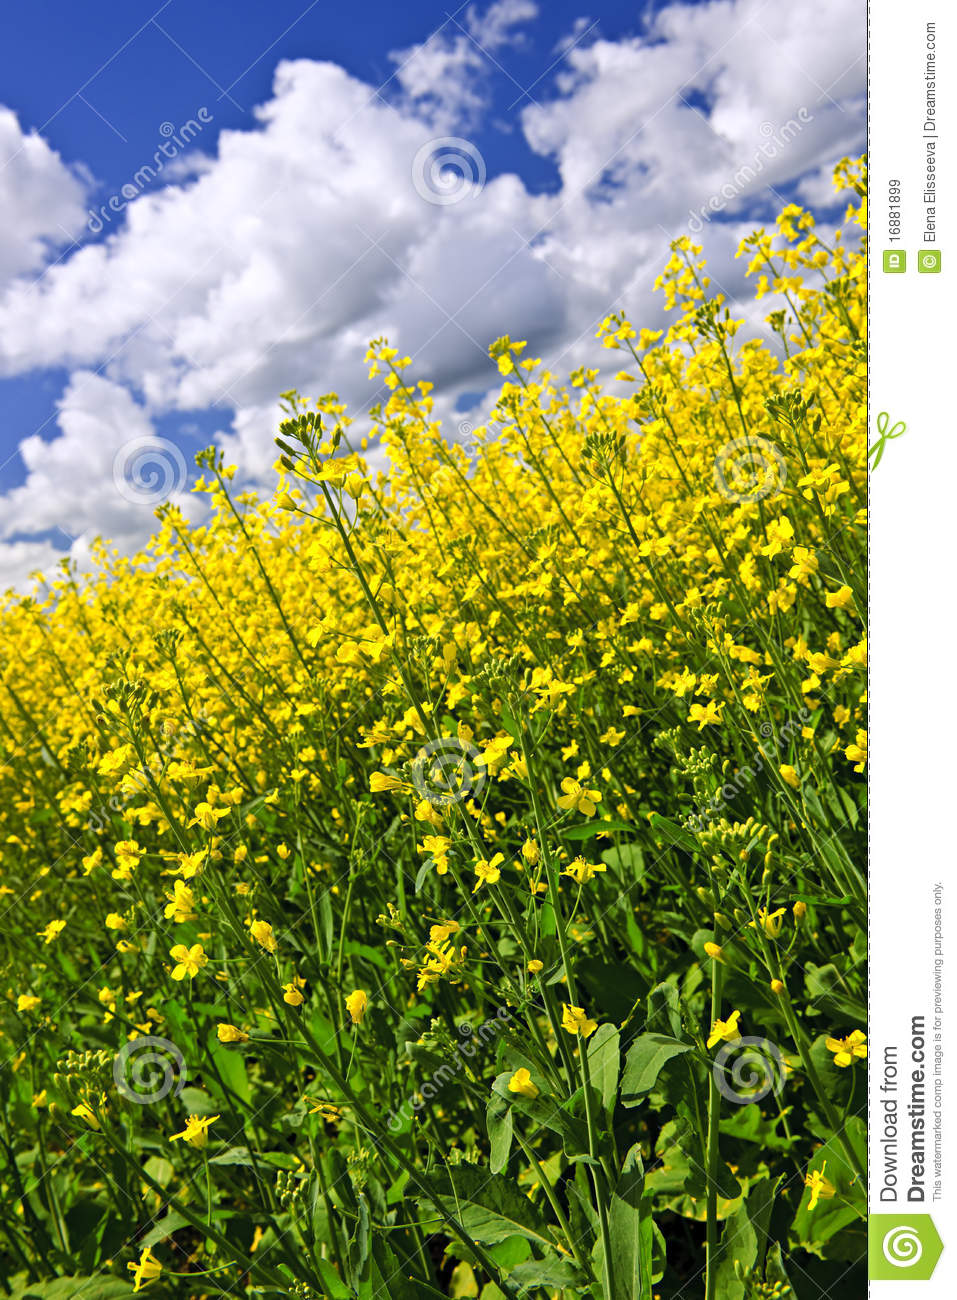 Canola Plants In Field Stock Image. Image Of Agricultural